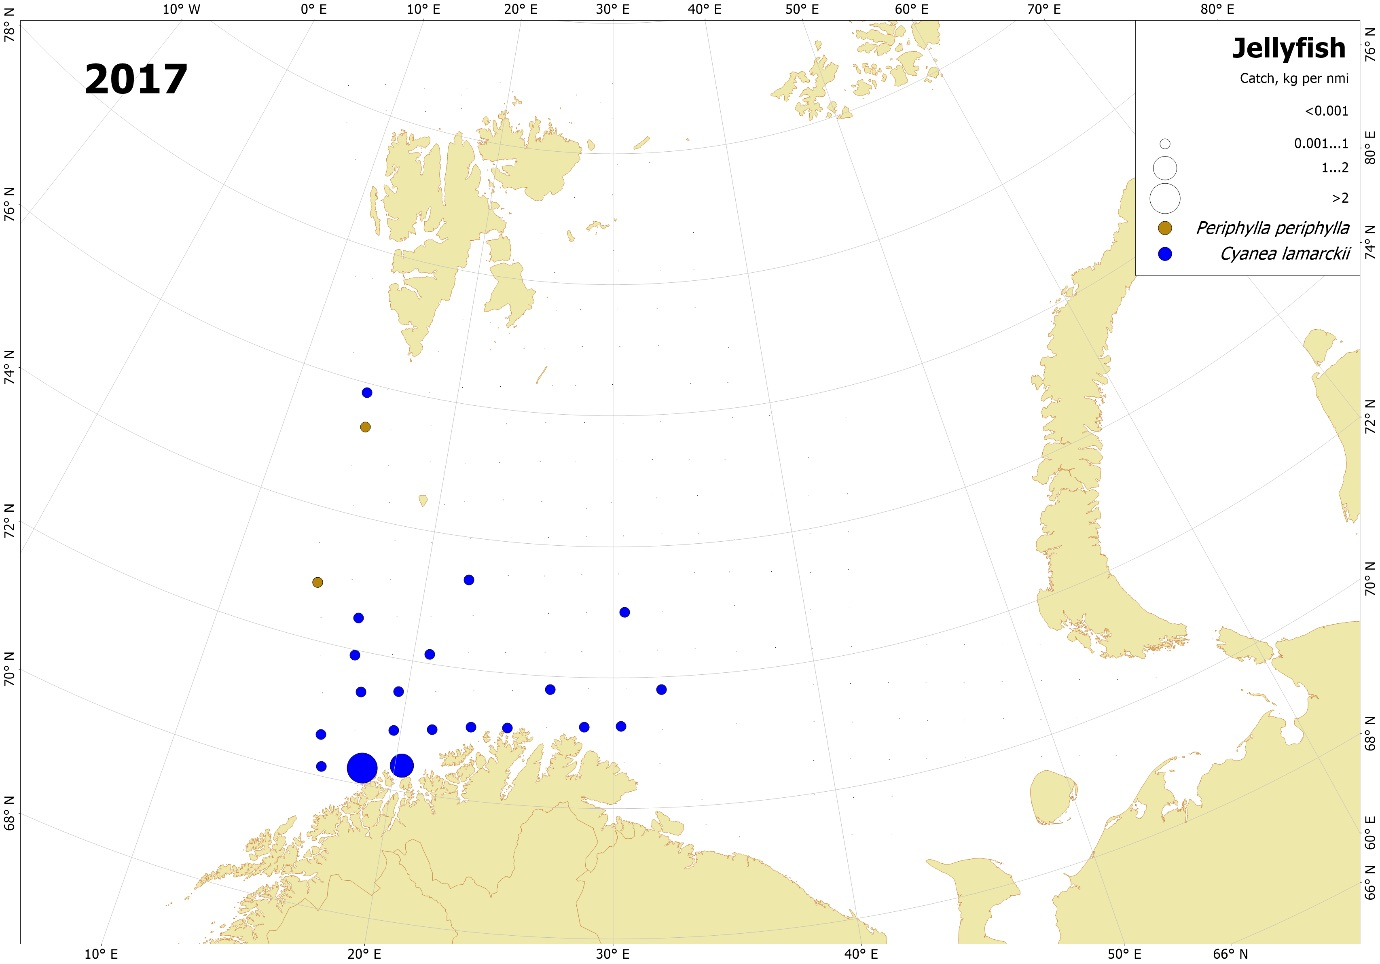 Figure 3.3.15. Distribution and catches (wet weight; kg per nmi) of Cyanea lamarckii and Periphylla periphylla in the Barents Sea, August-October 2017. Catches both day and night from standard pelagic trawl in the upper 0-60 m layer.